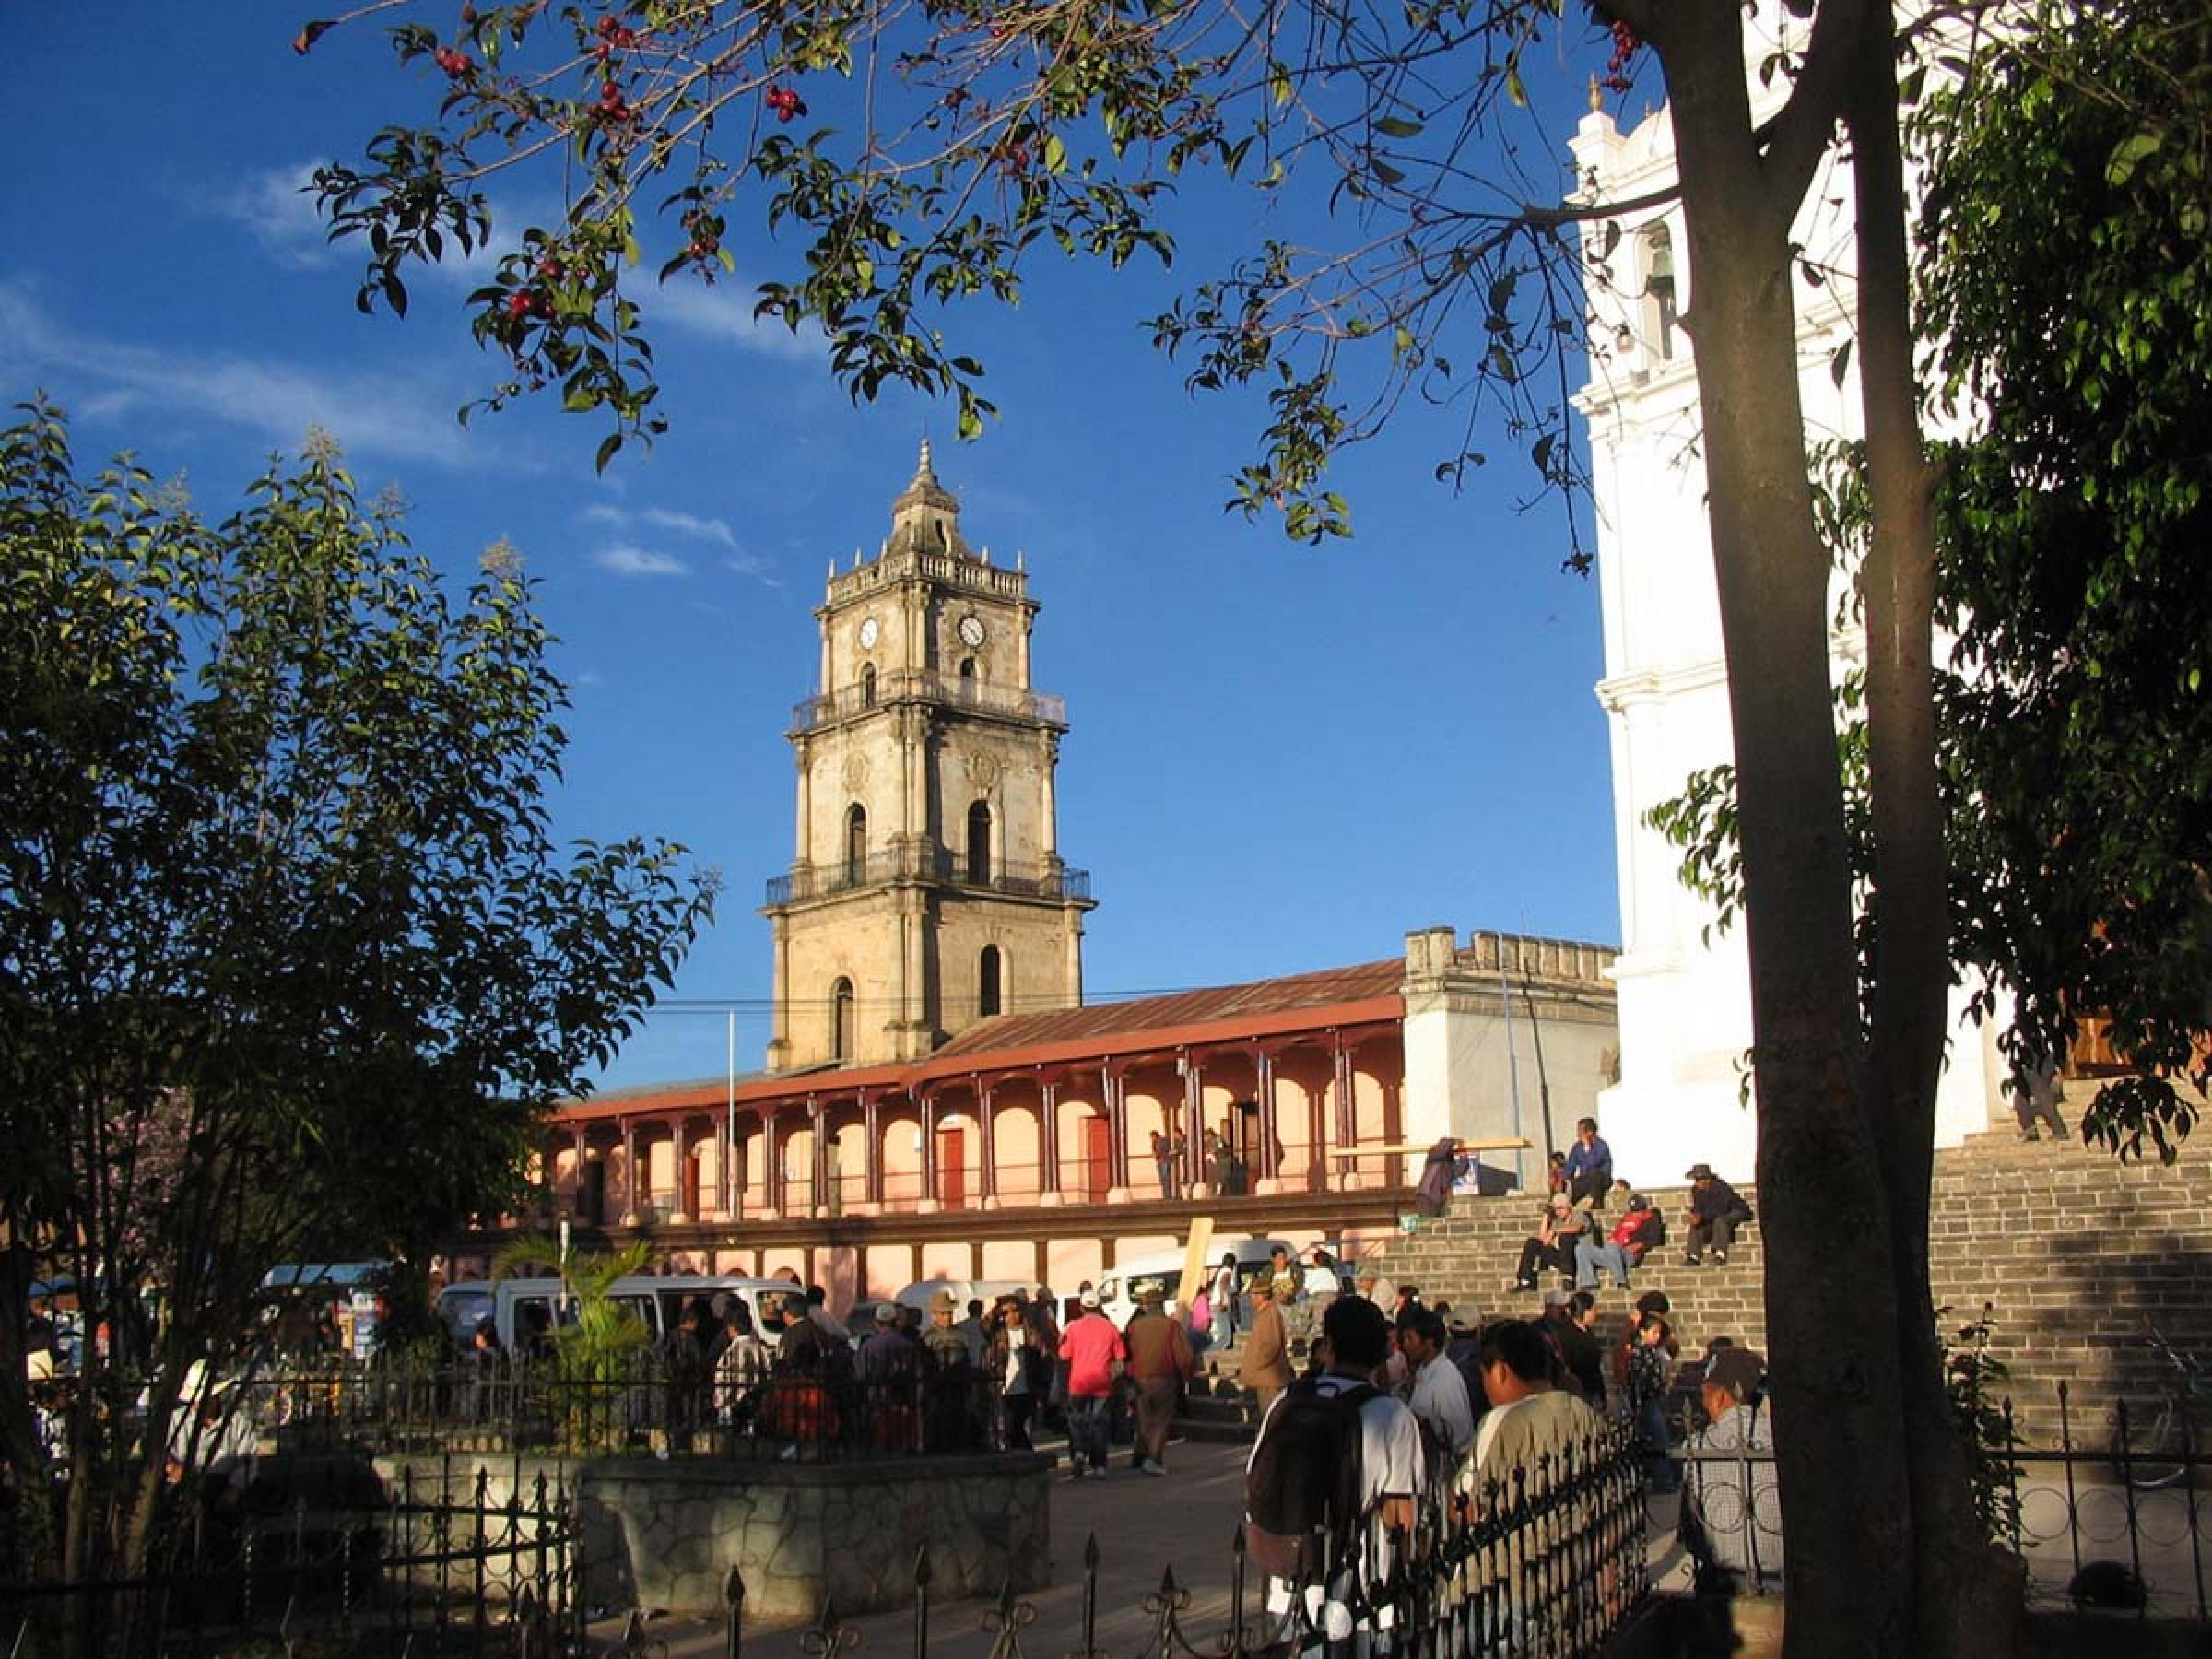 santa cruz del quiche jewish dating site Huehue- santa cruz del quiche- guamarcaaj-  impressive unesco world heritage site, with its immense stelae dating back to the 8th century lunch is included.